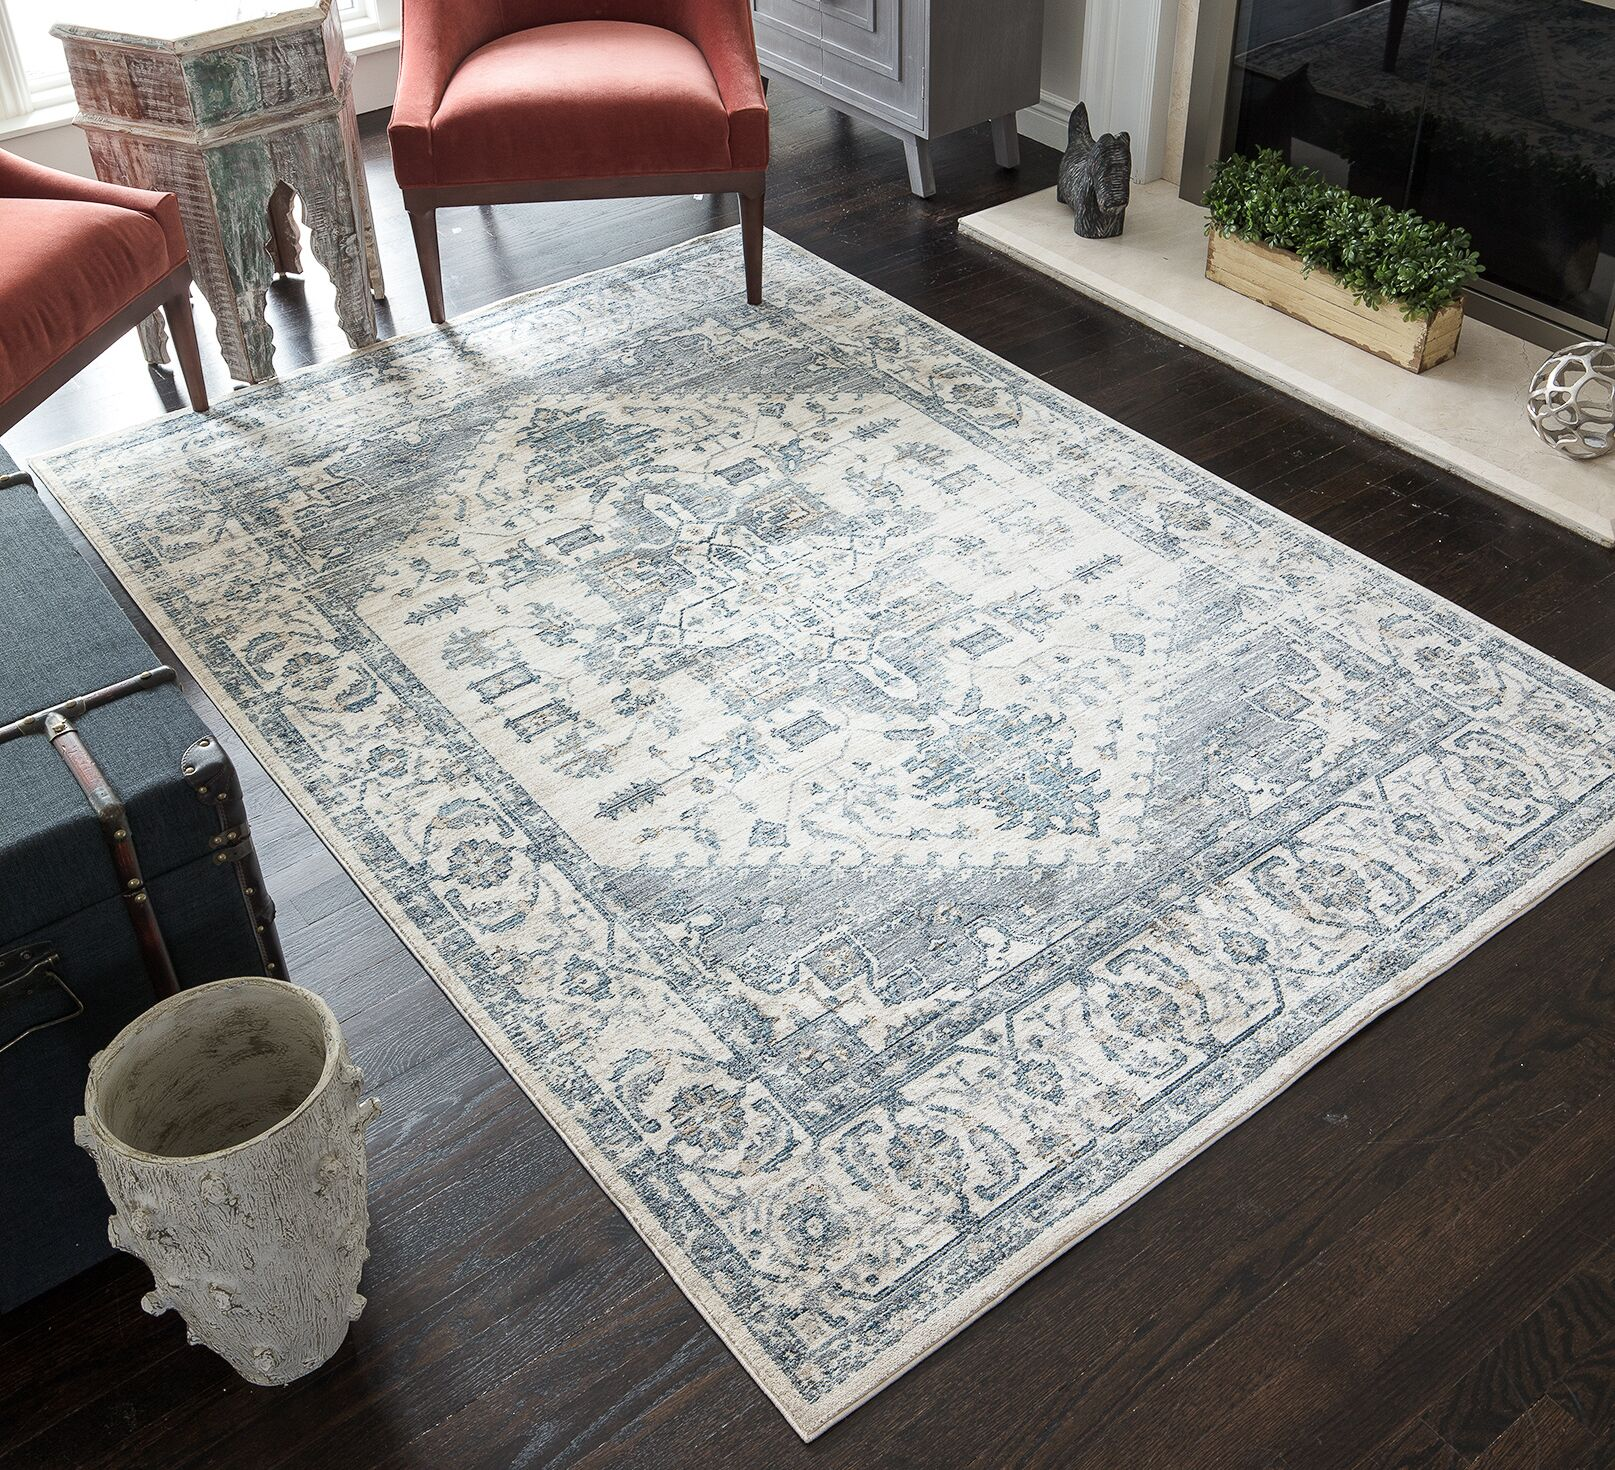 Park Classic Ivory/Grey Area Rug Rug Size: Rectangle 5' x 7'